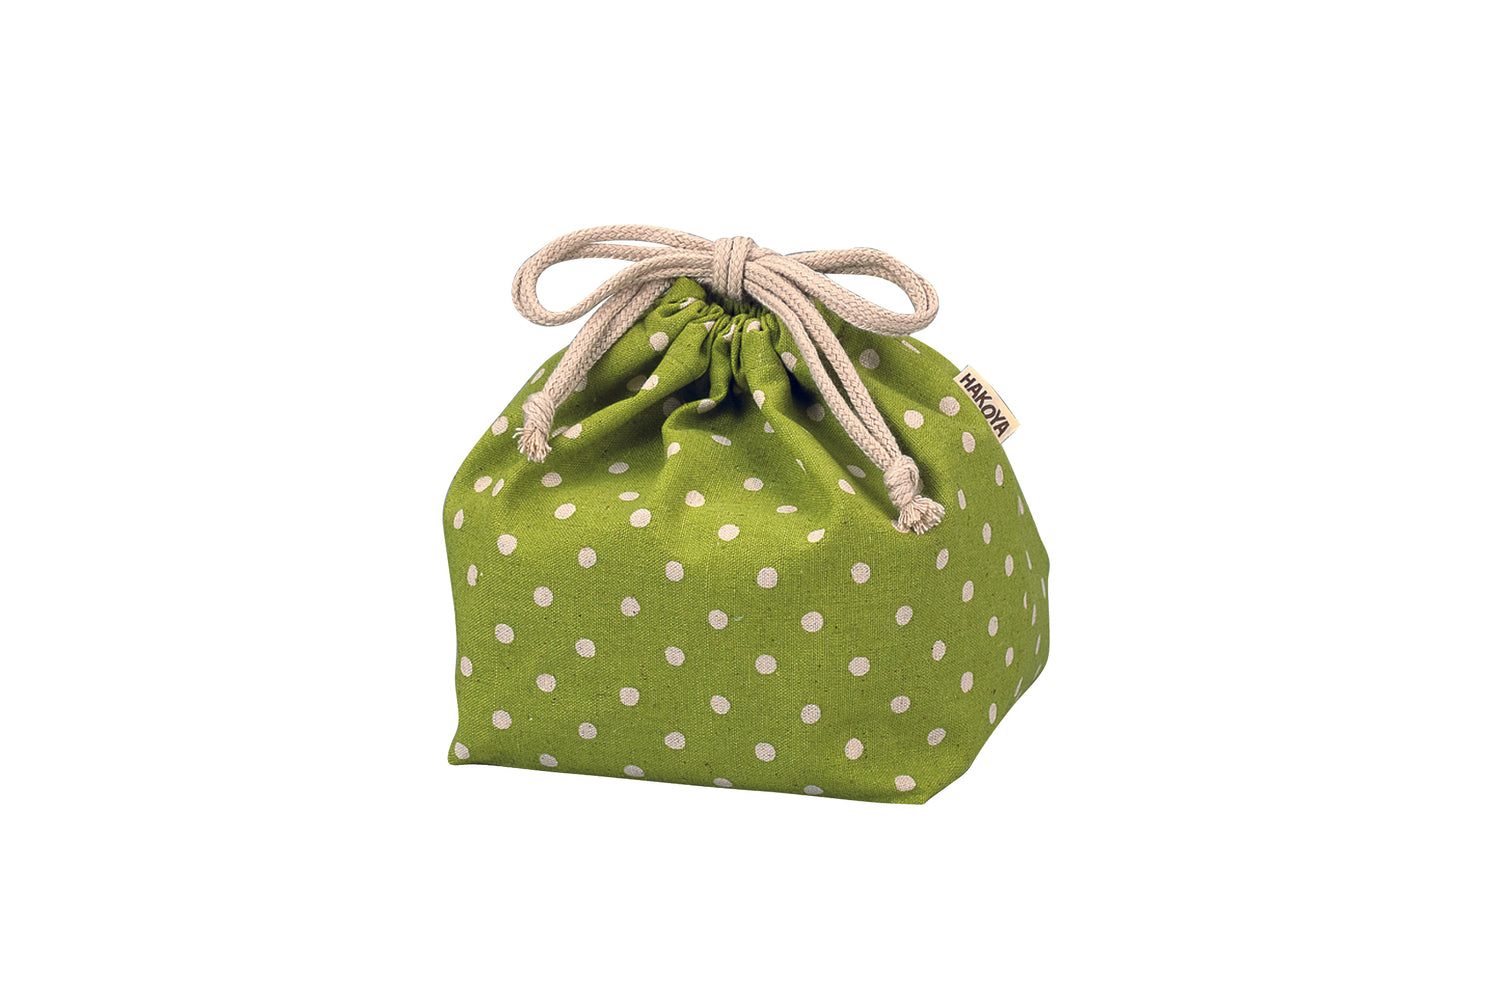 Polka Dots Bag | Green by Hakoya - Bento&co Japanese Bento Lunch Boxes and Kitchenware Specialists